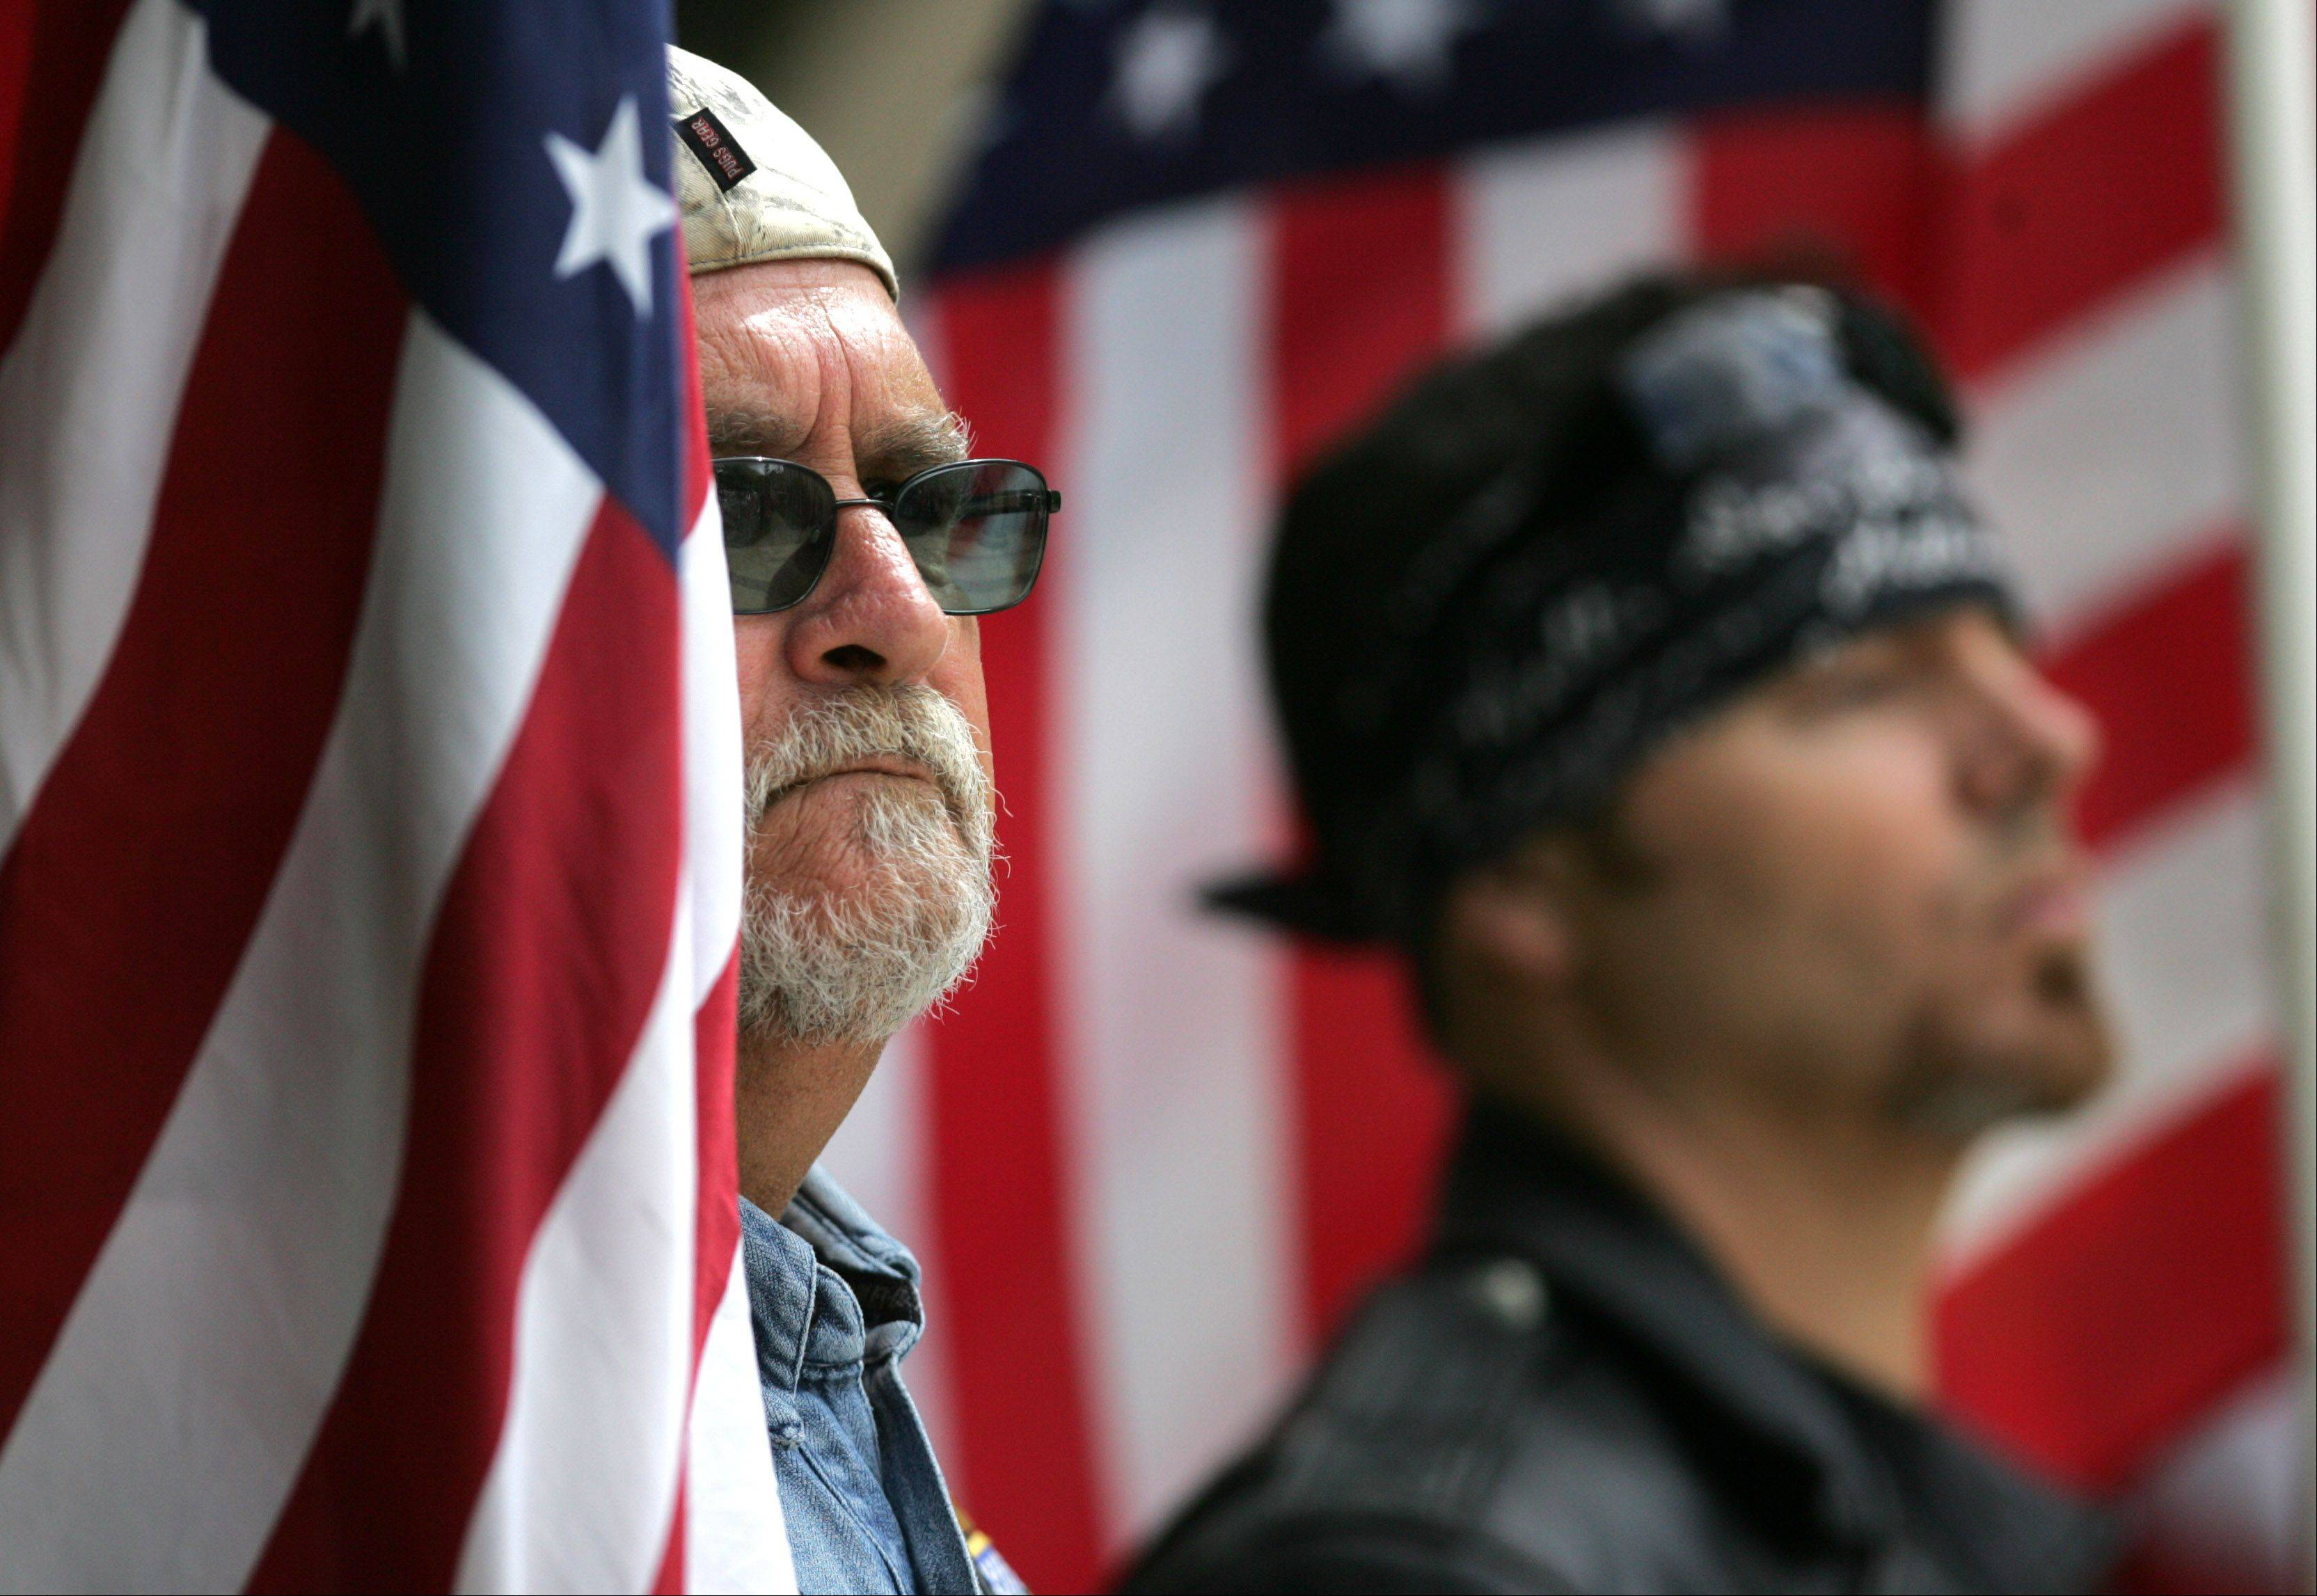 About 40 members of the Patriot Guard led the funeral procession to Wheaton Cemetery.